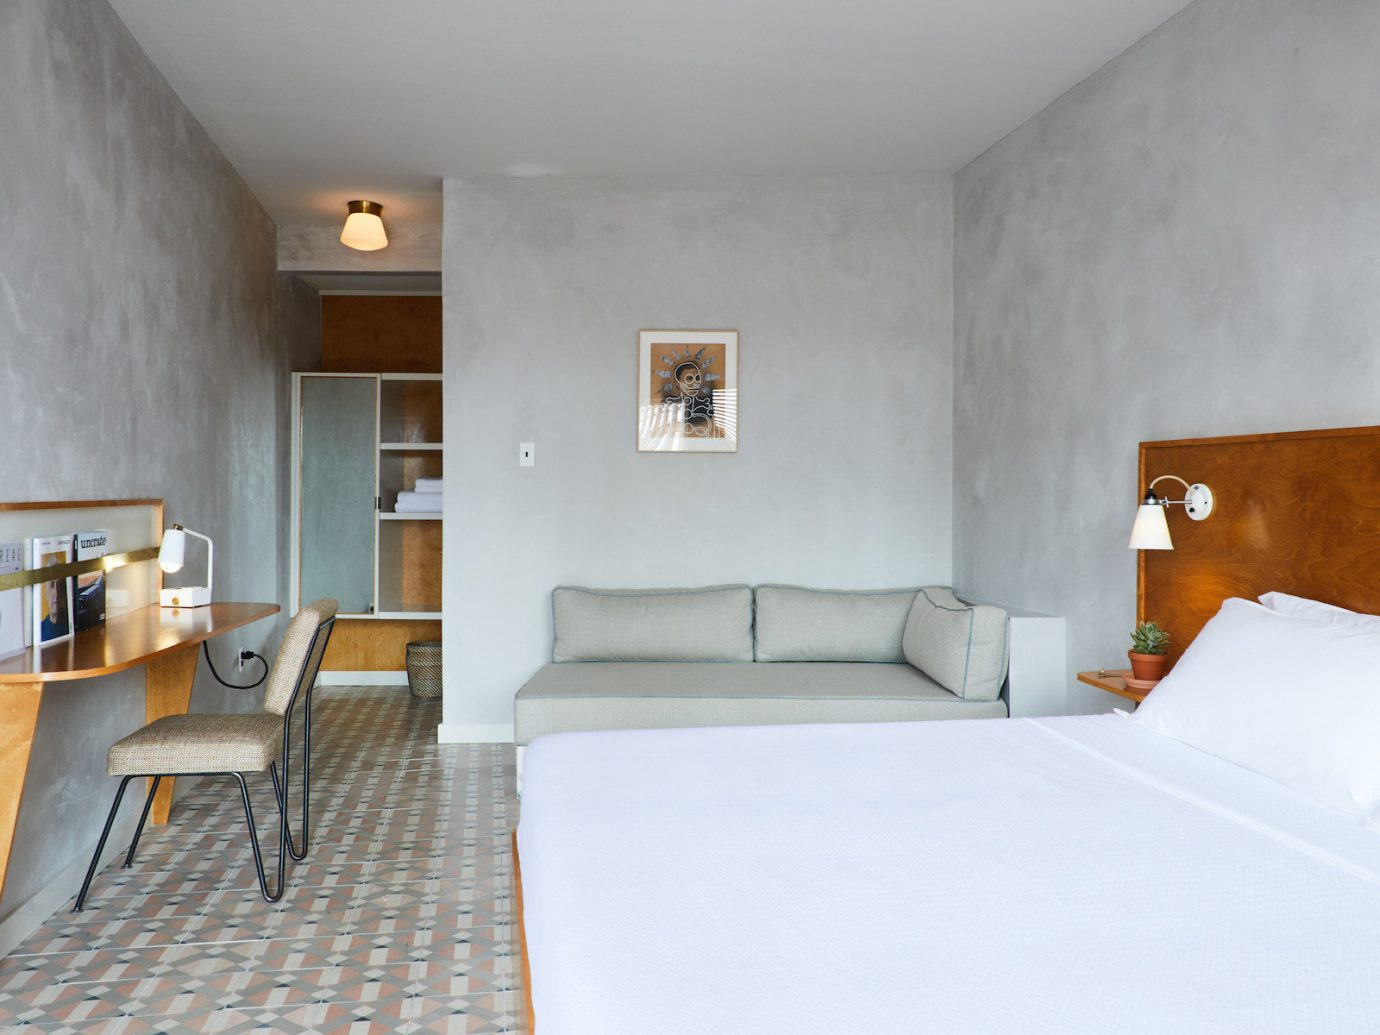 Bedroom at The Drifter Motel in New Orleans